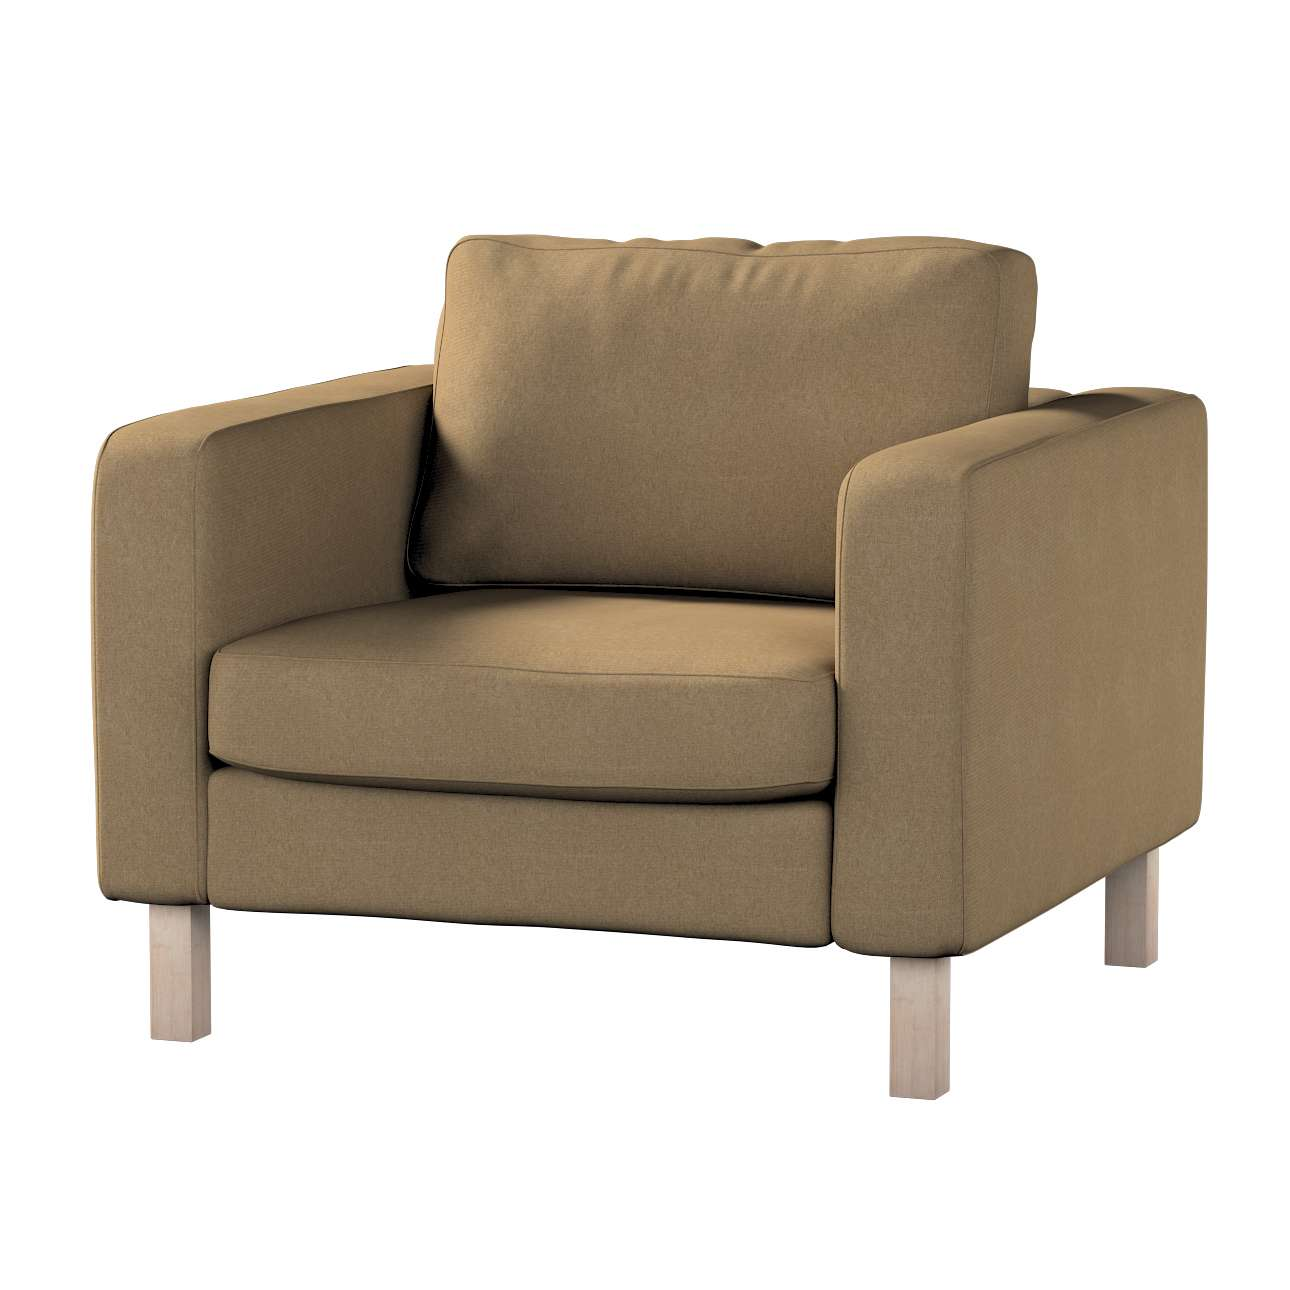 Karlstad armchair cover Karlstad armchair cover in collection Etna, fabric: 705-06